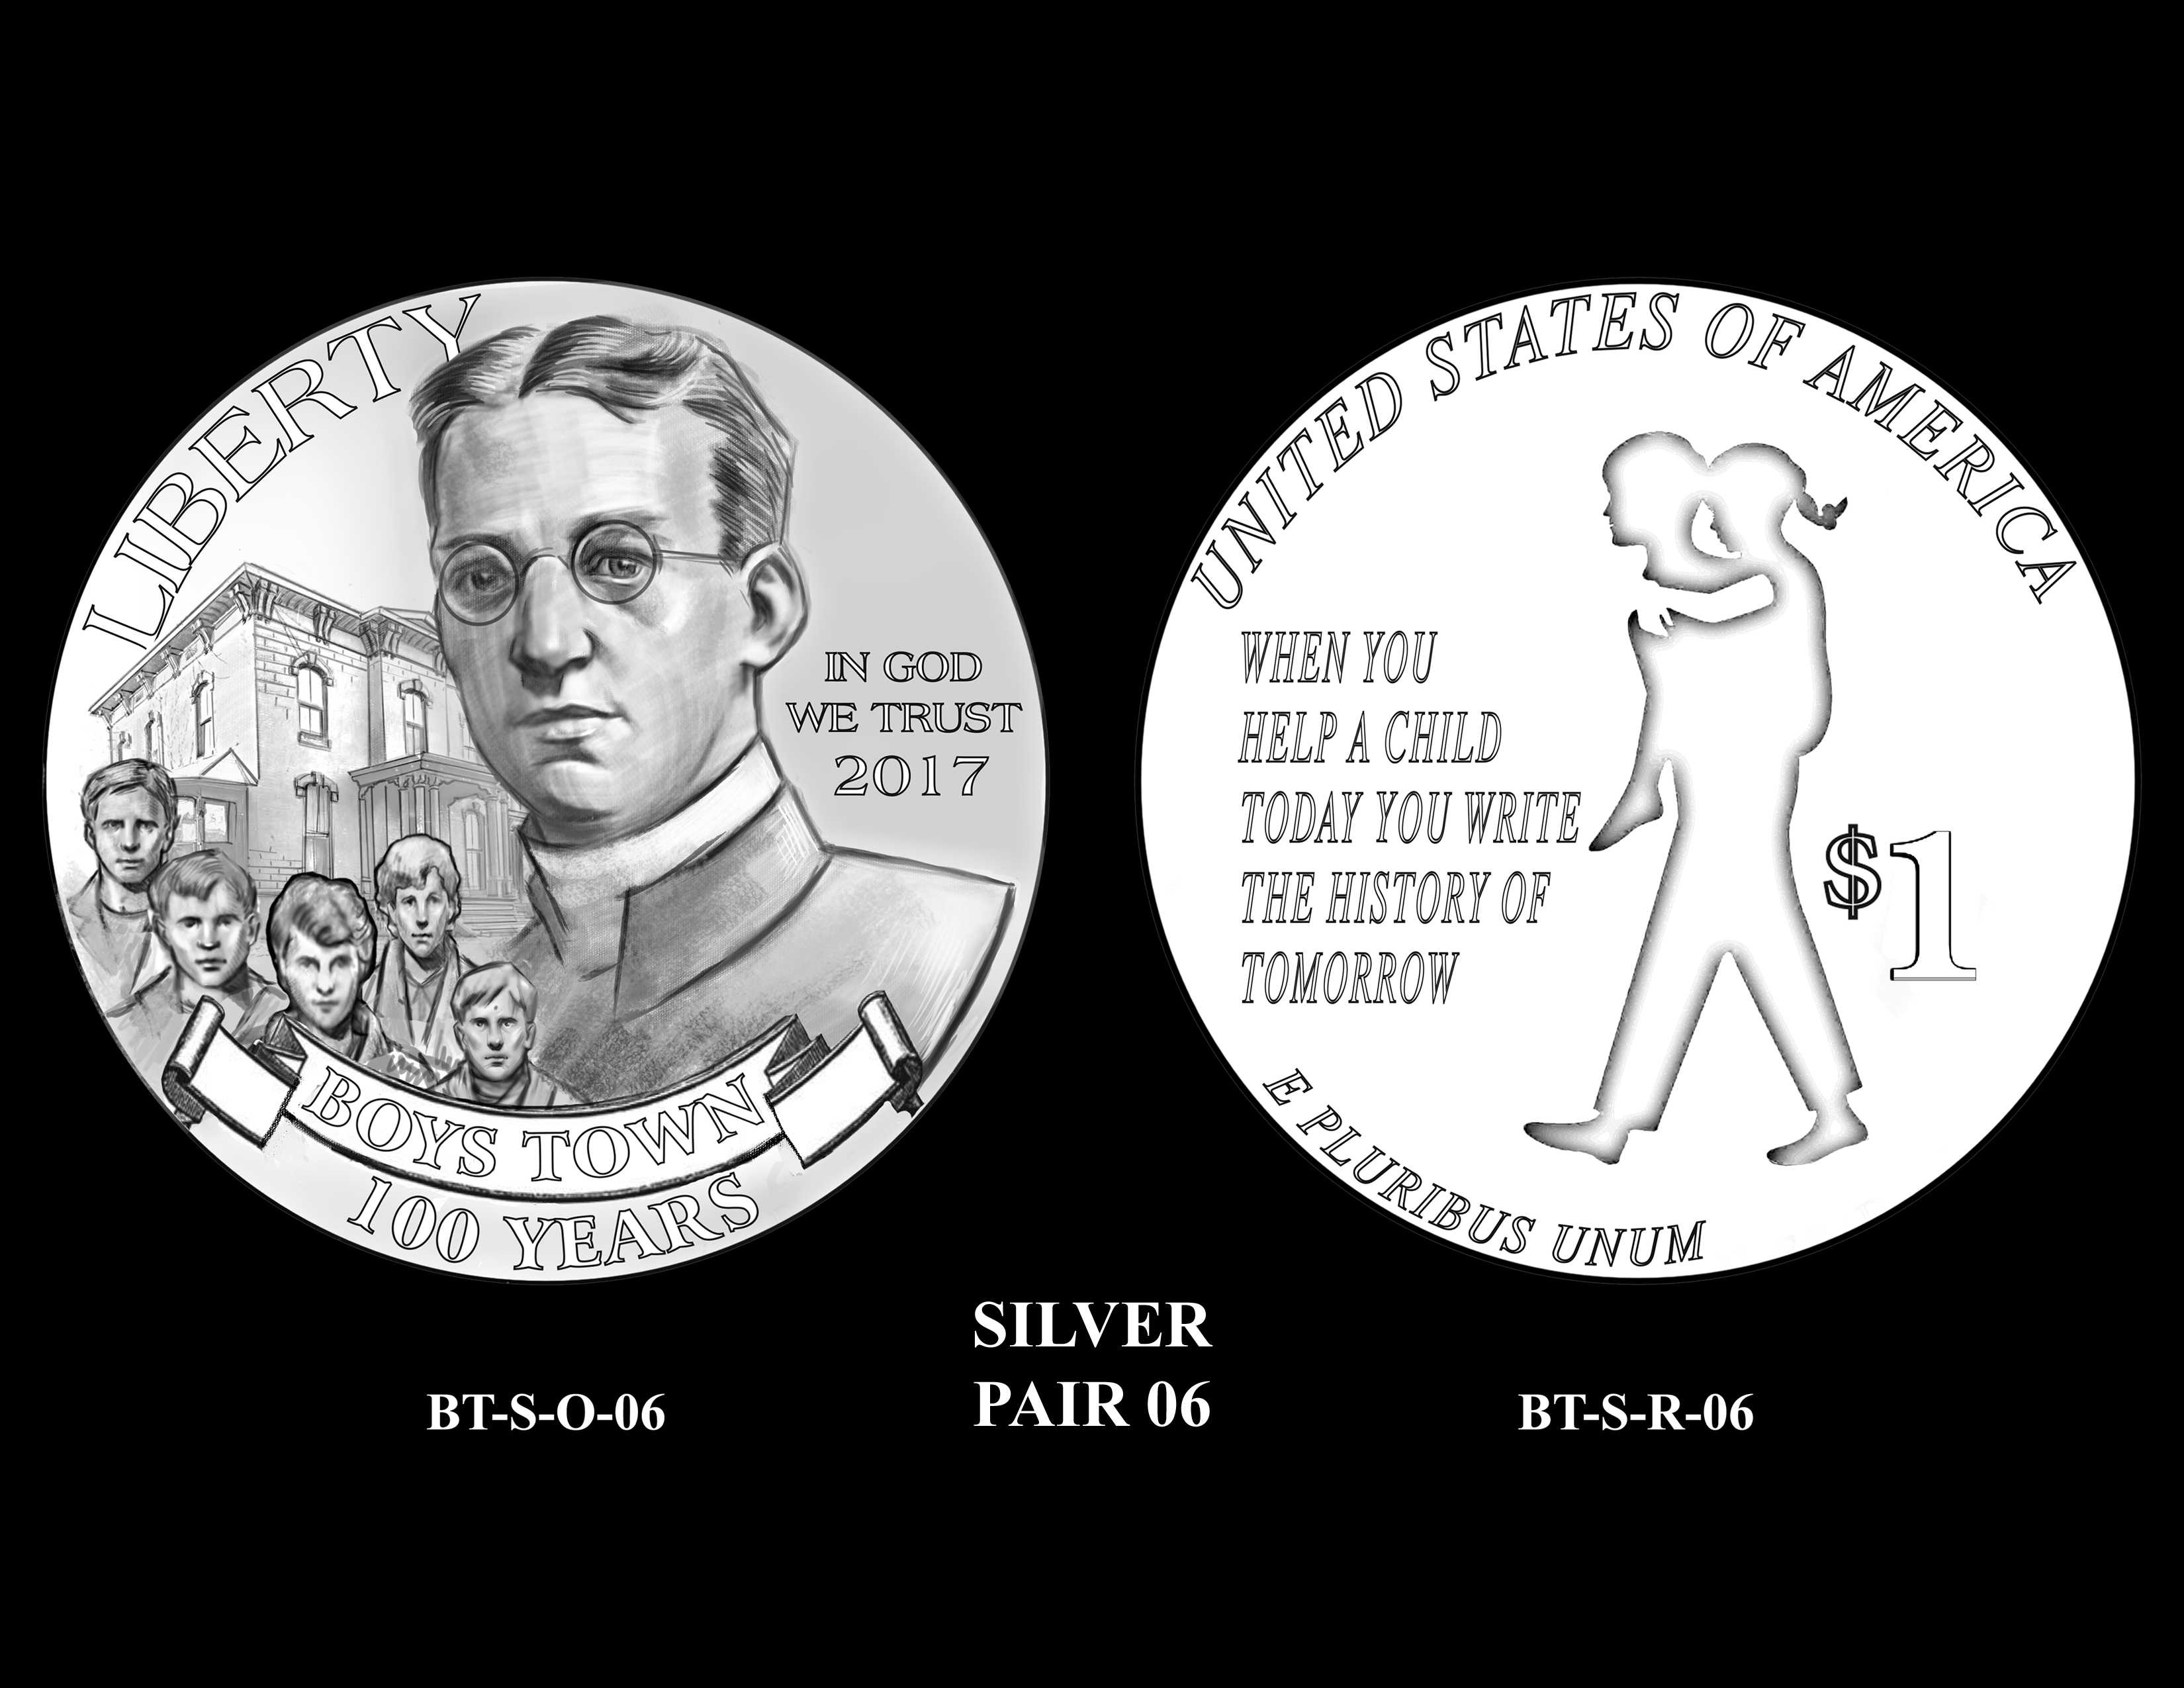 Silver-Pair-06 -- 2017 Boystown Centennial Commemorative Coin  Program